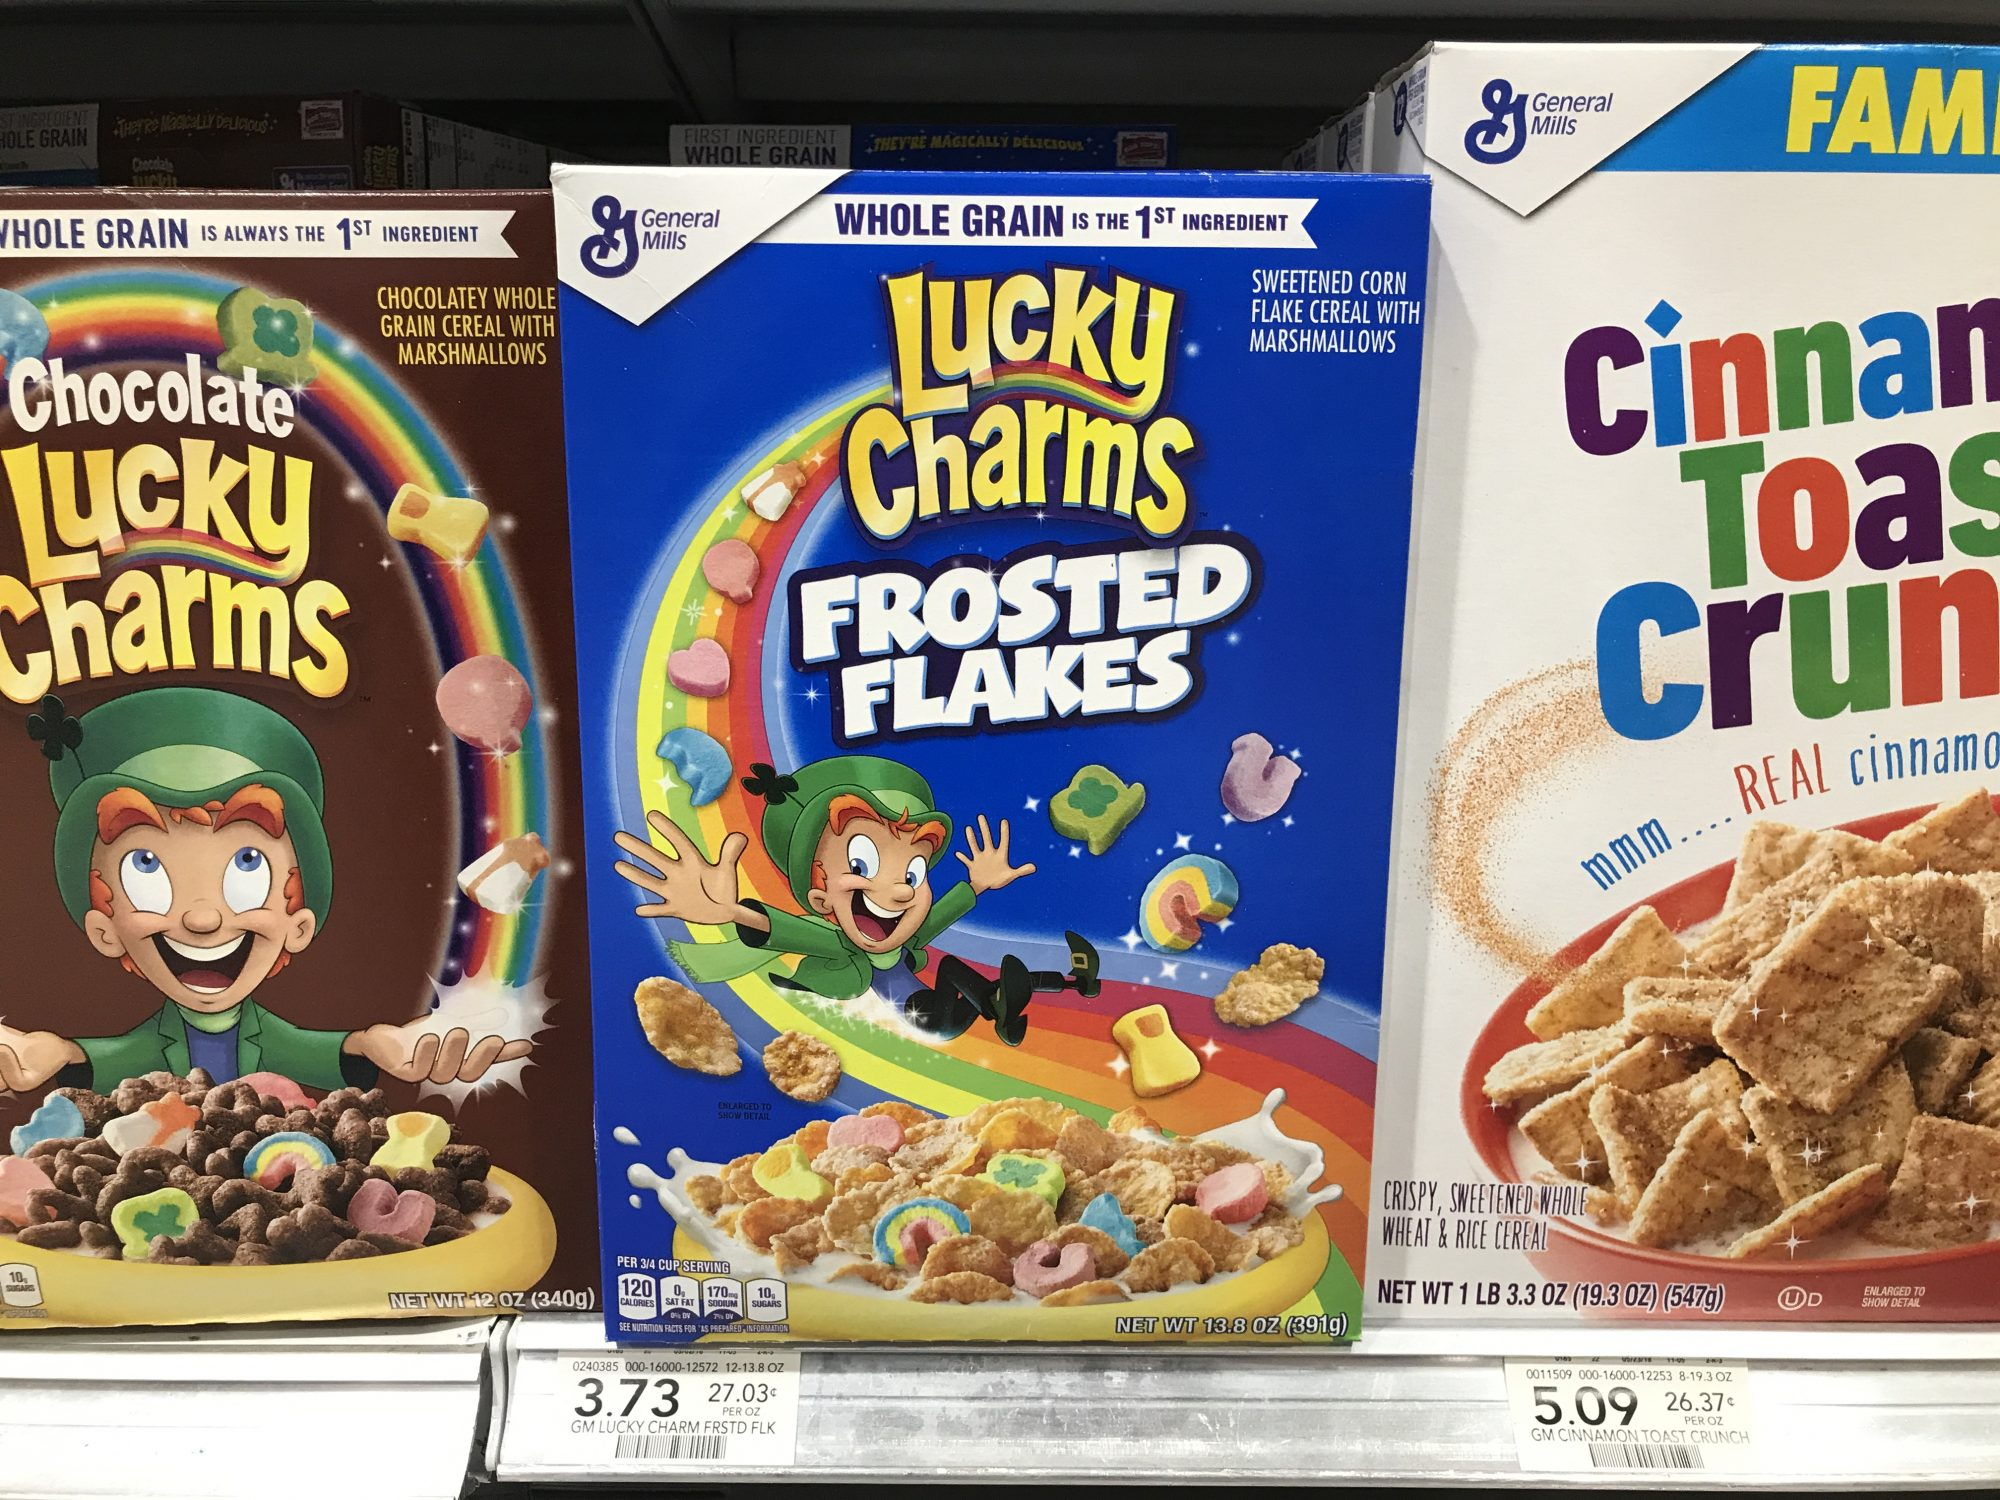 FrostedFlakes Lucky Charms image